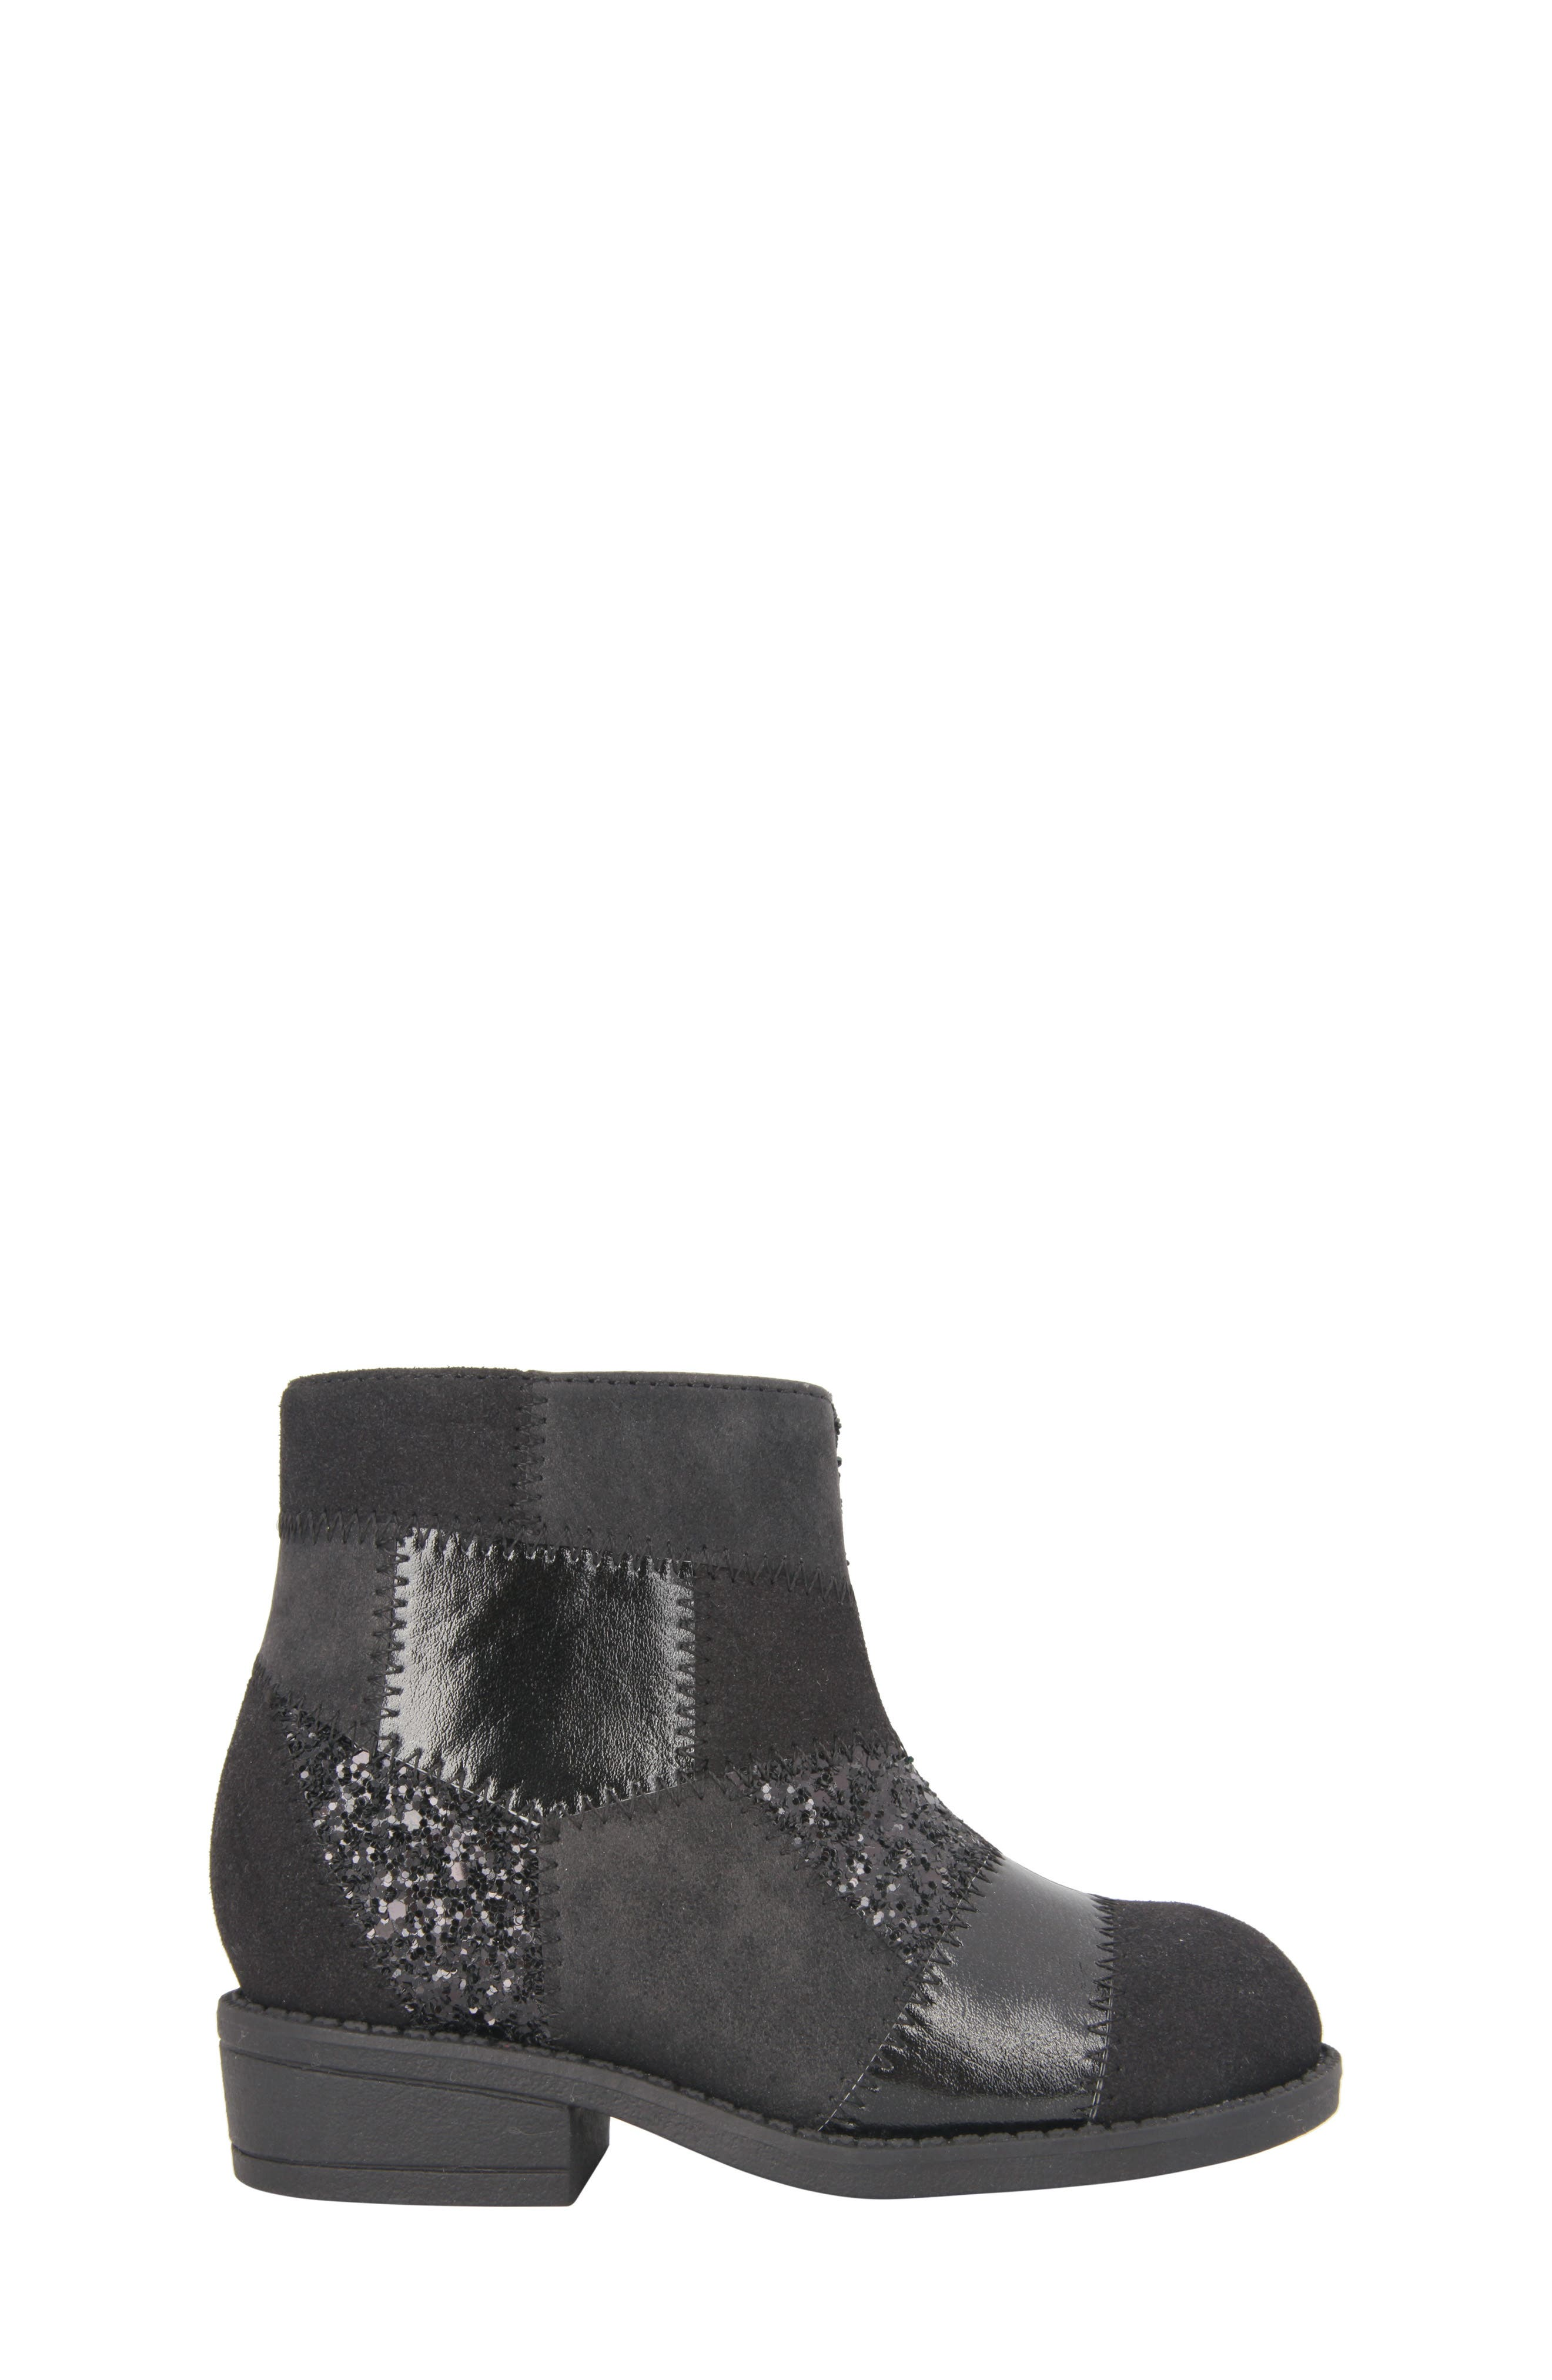 Ines Glittery Patchwork Bootie,                             Alternate thumbnail 7, color,